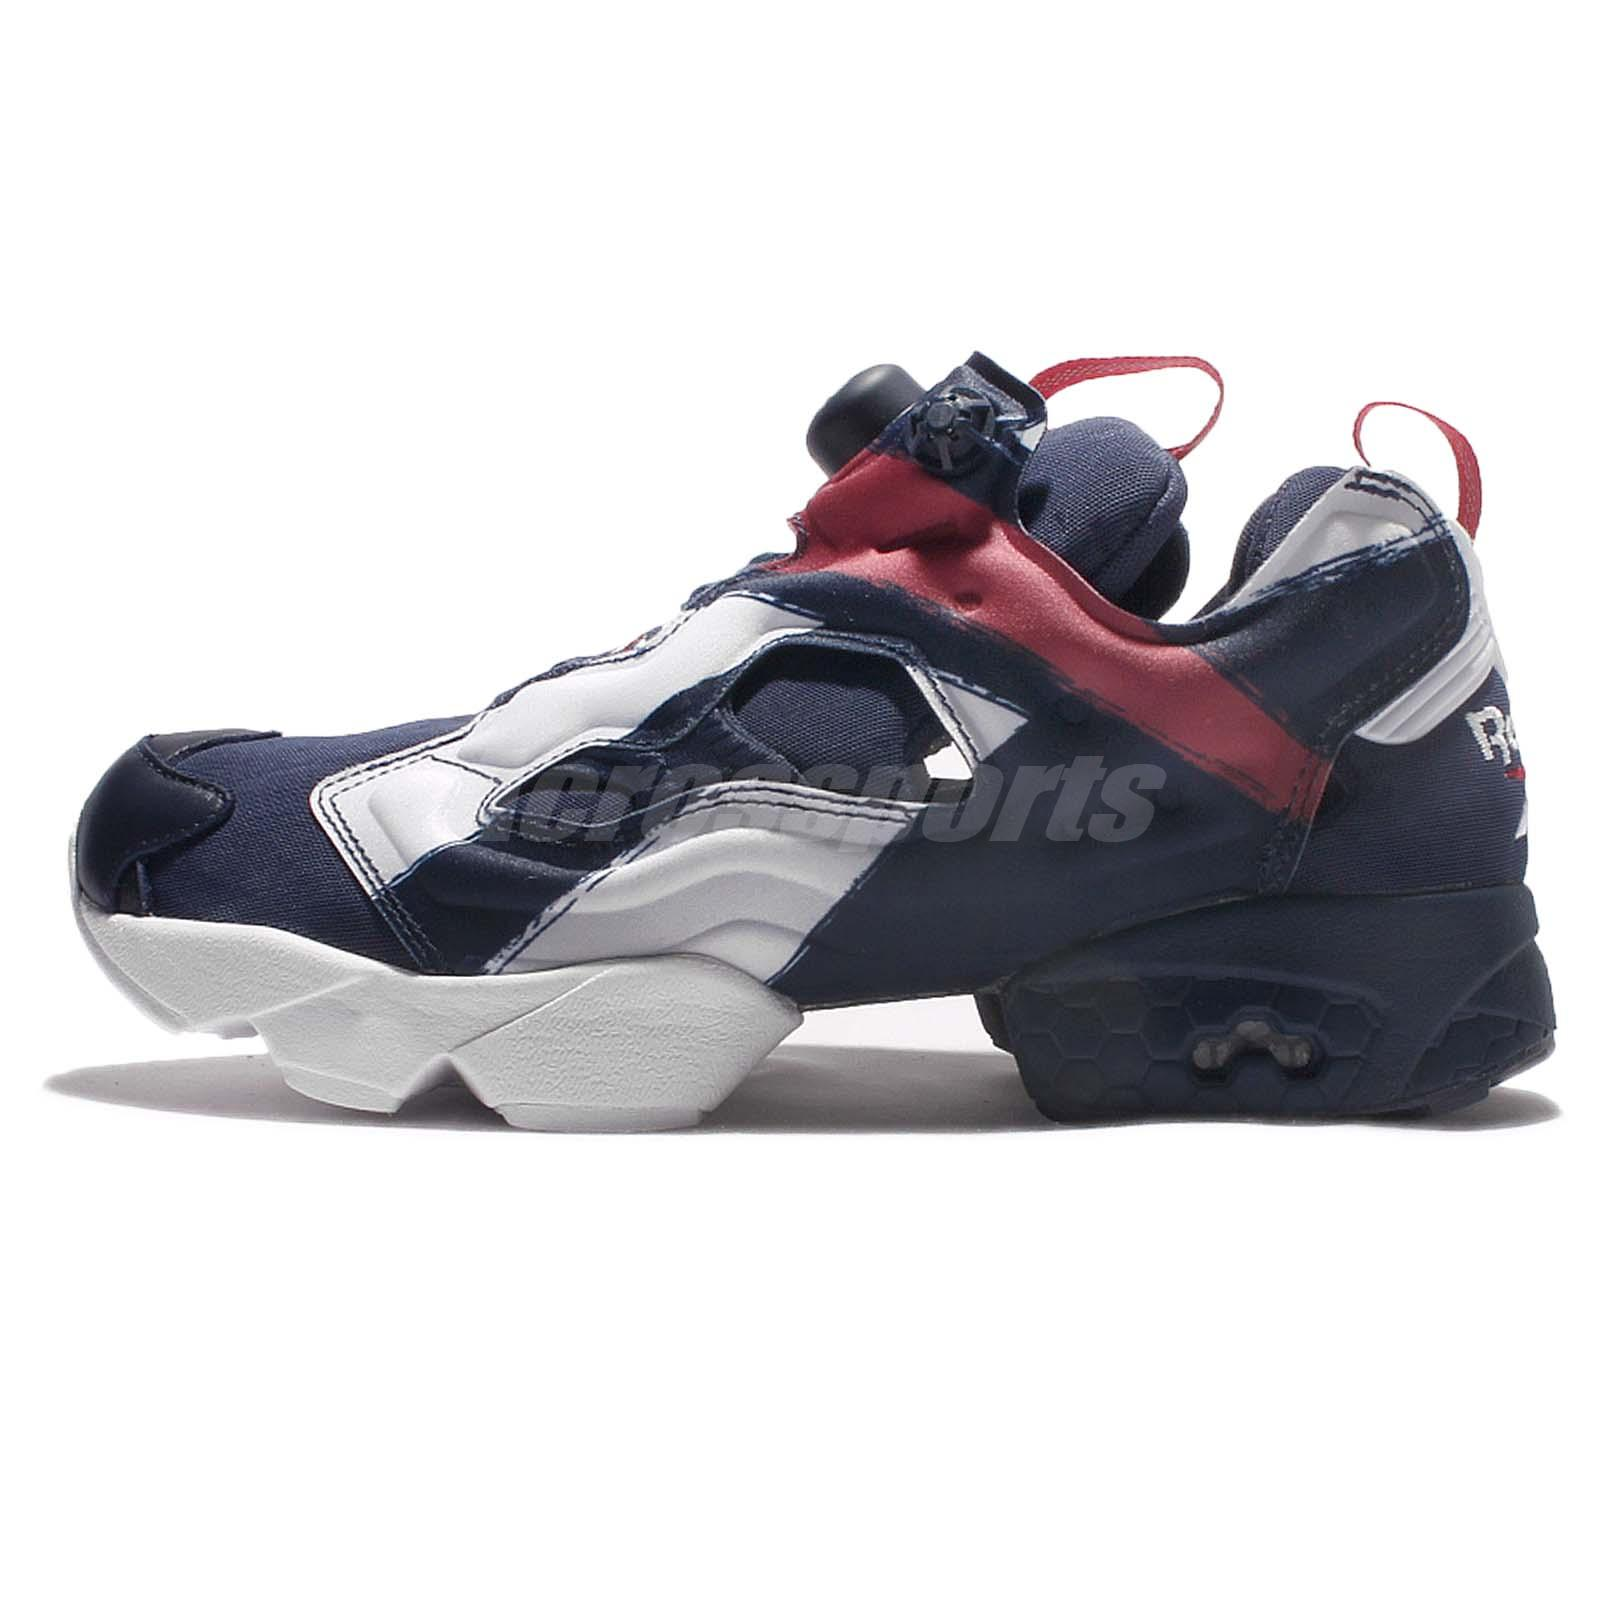 reebok insta pump fury ob overbranded navy red men running shoes sneakers ar3197. Black Bedroom Furniture Sets. Home Design Ideas